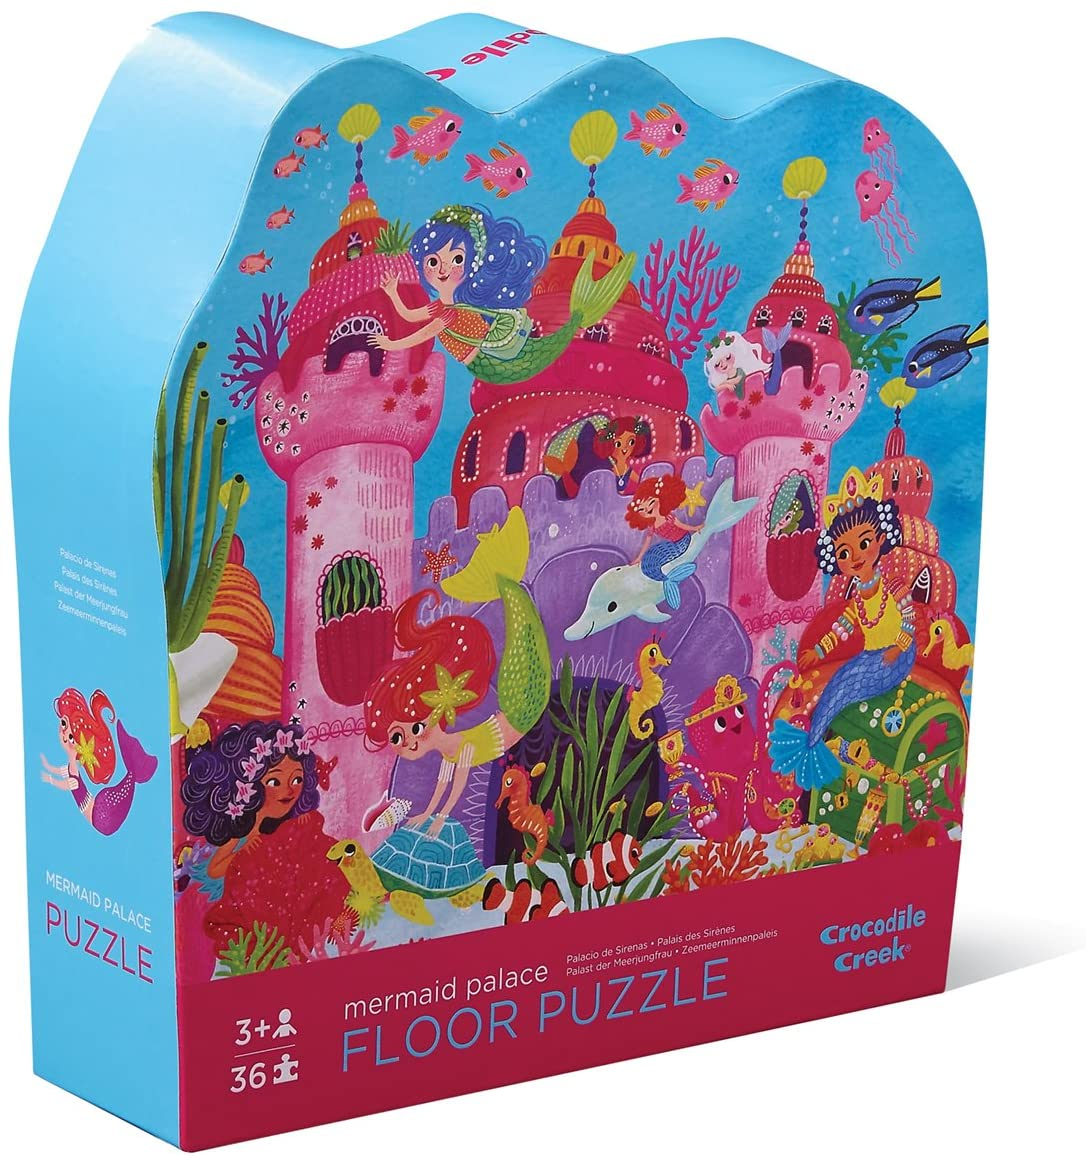 Crocodile Creek - Mermaid Palace - 36 Piece Jigsaw Floor Puzzle with Heavy-Duty Box for Storage, Large 20